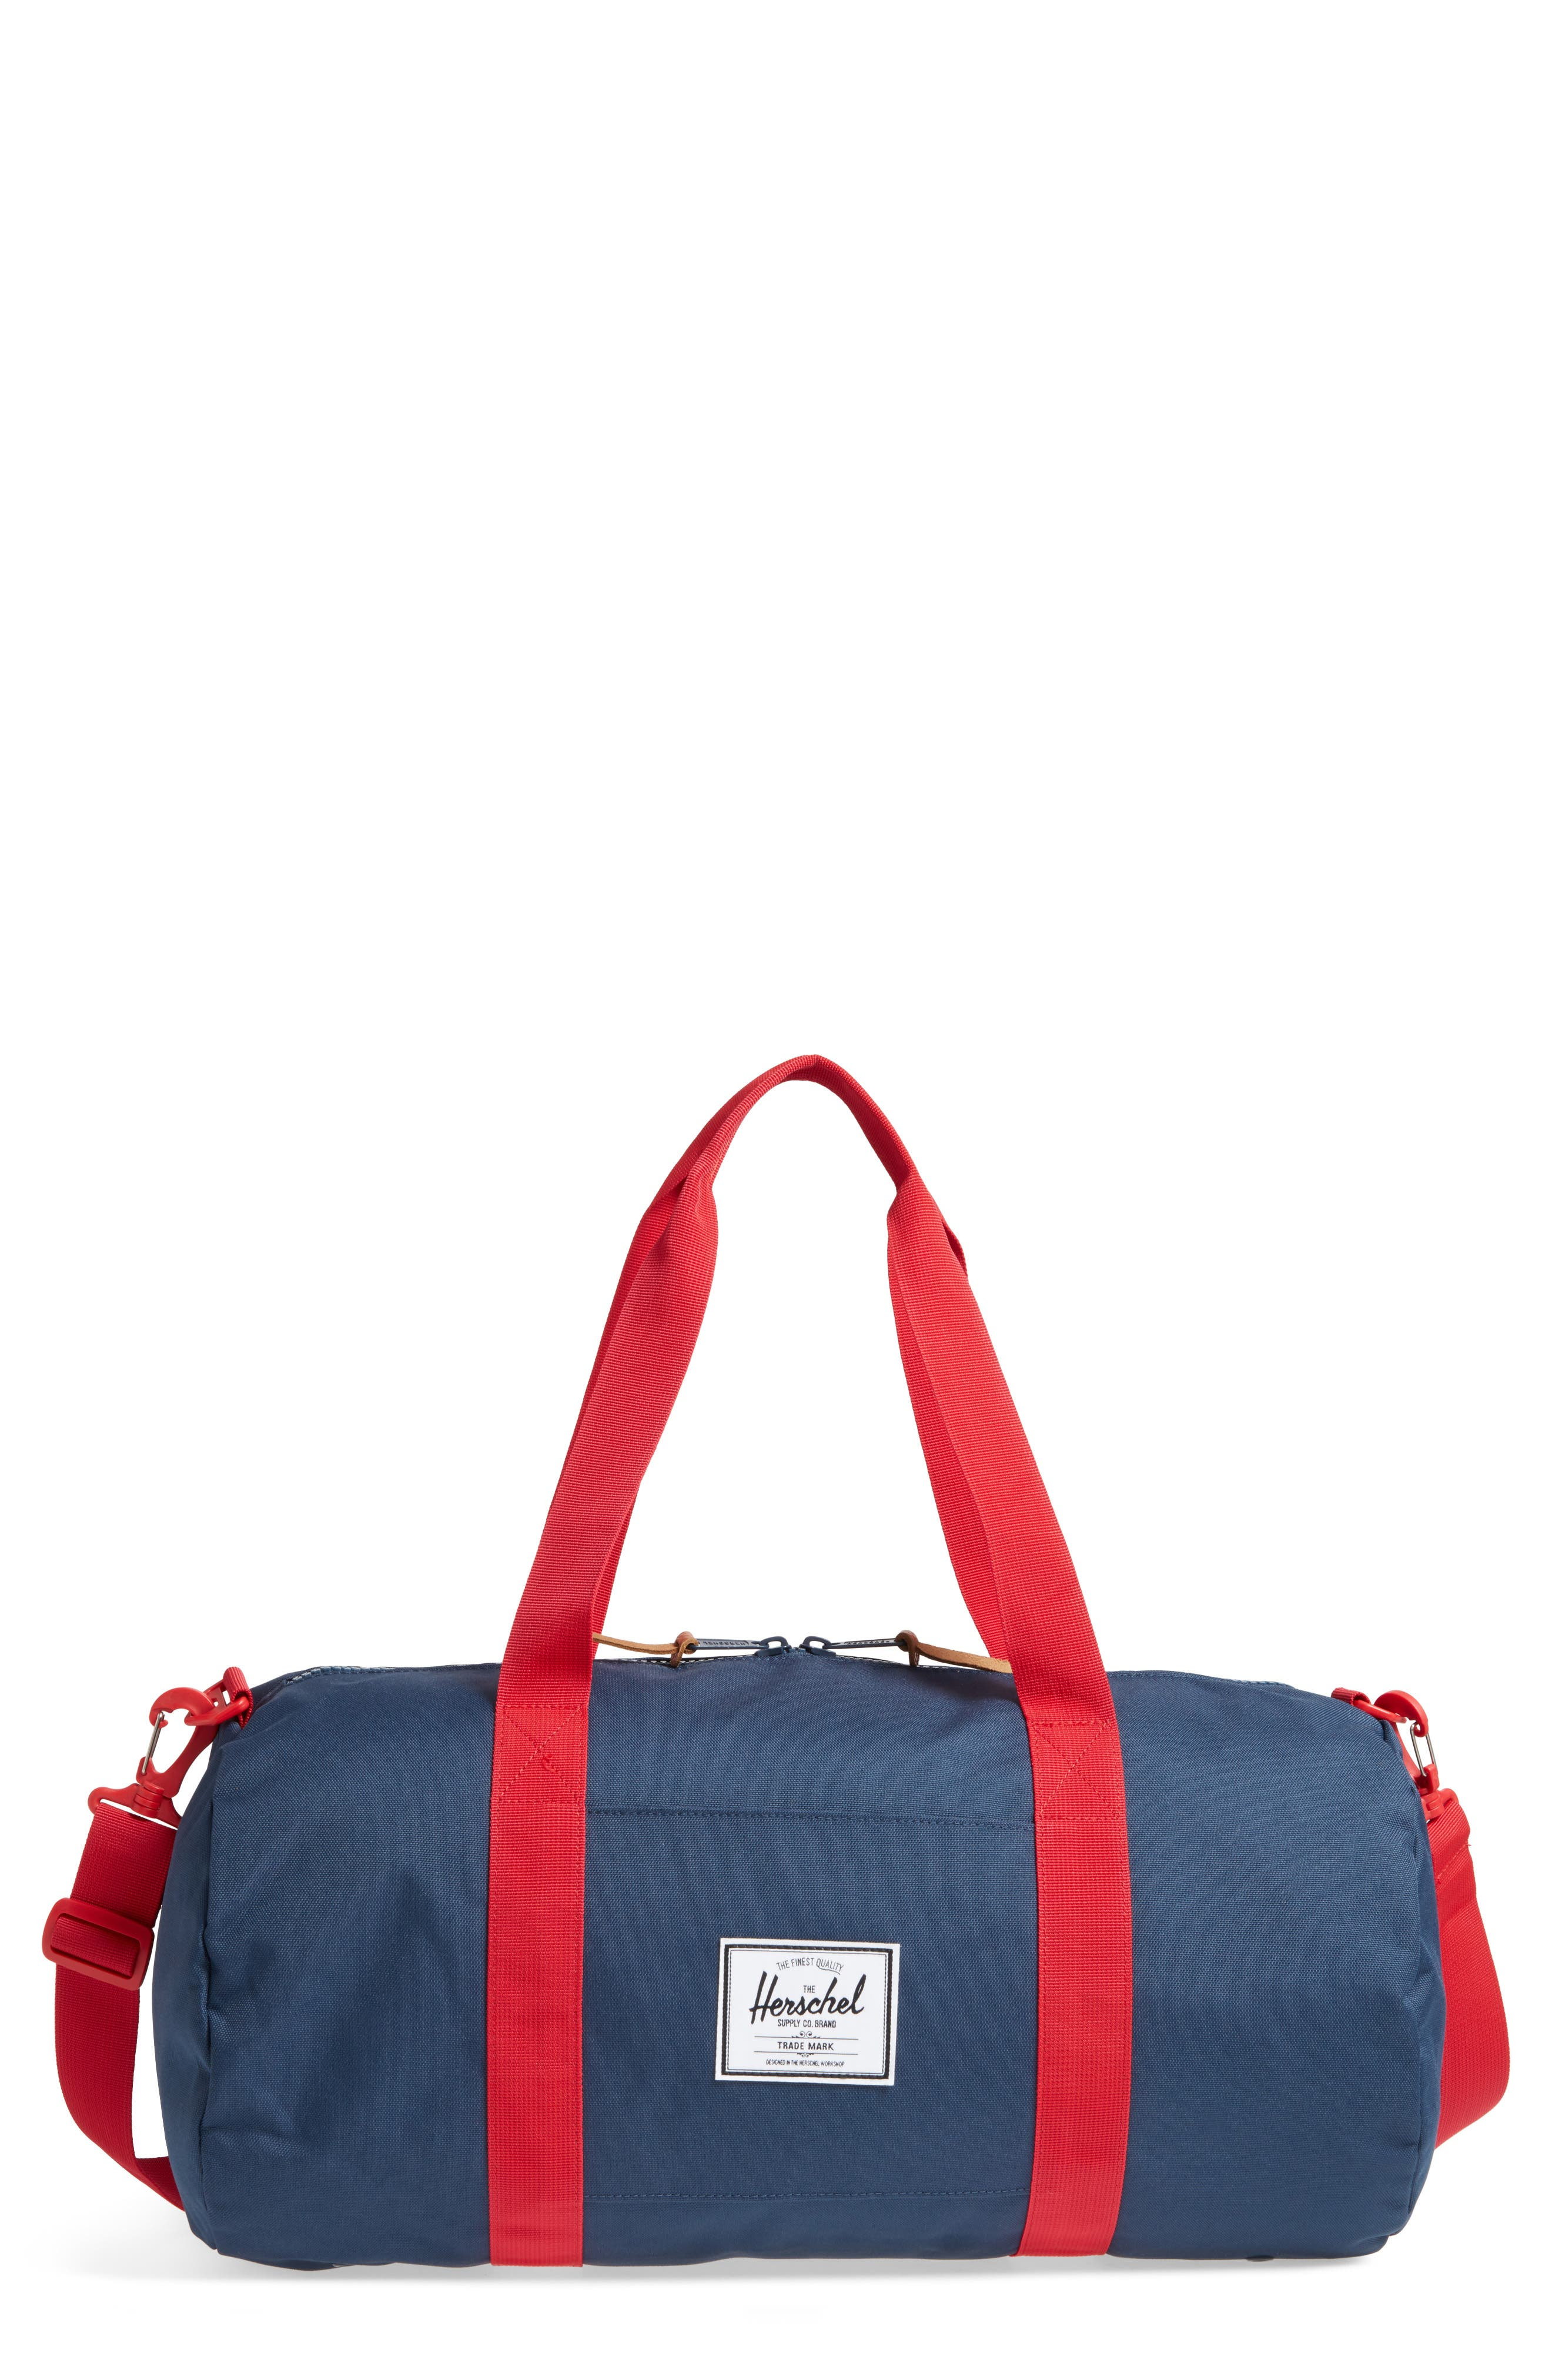 Alternate Image 1 Selected - Herschel Supply Co. Sutton Mid Duffel Bag